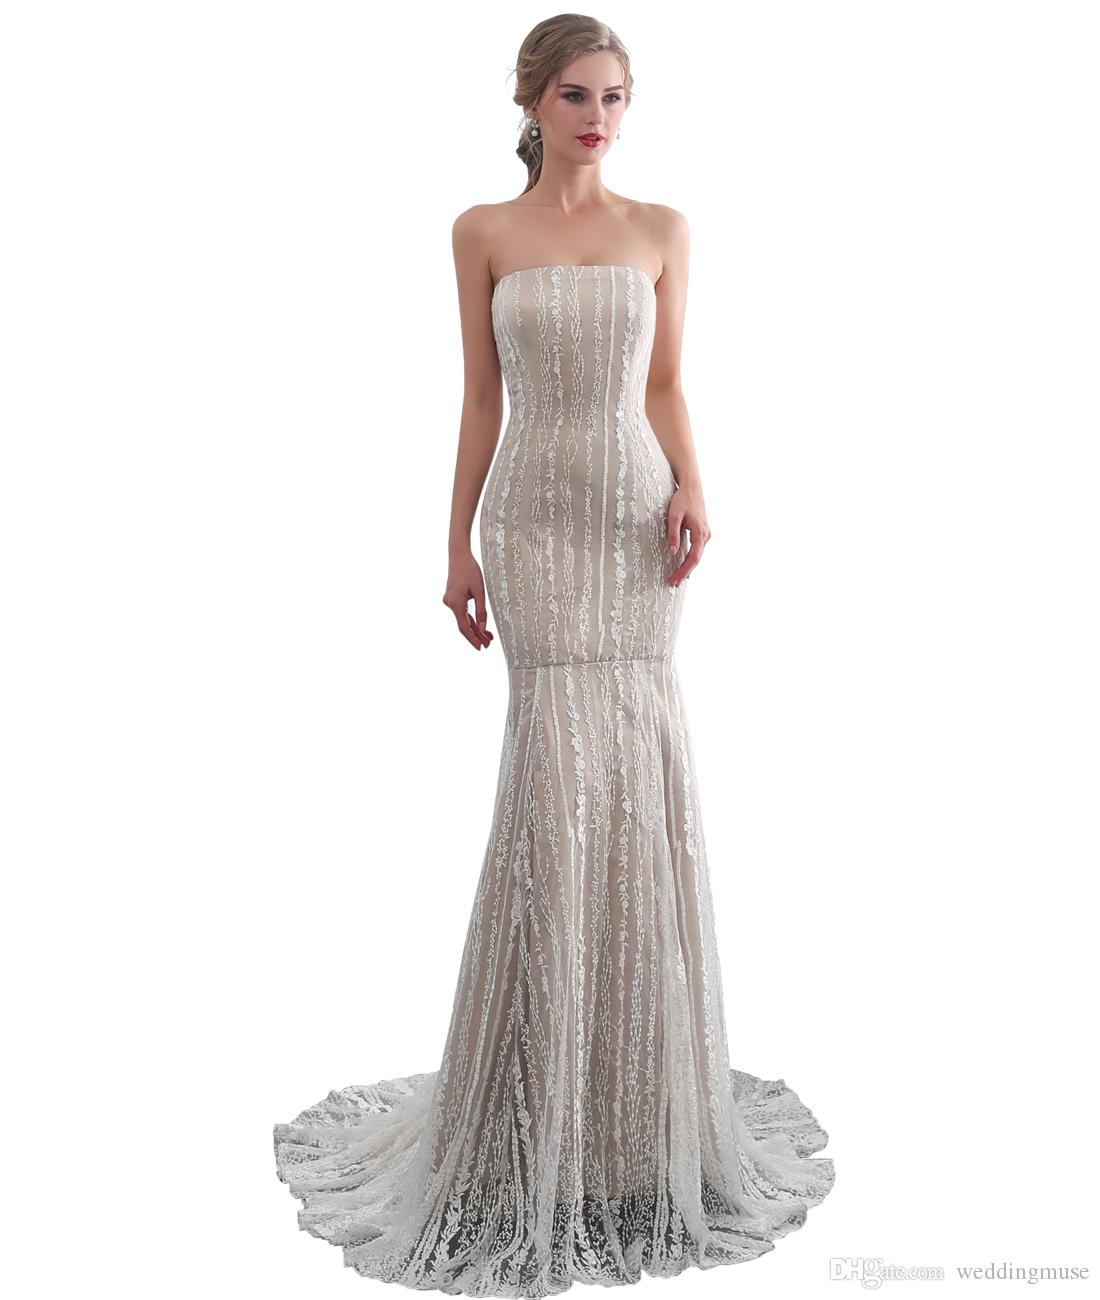 Sexy Strapless Champagne Mermaid Wedding Dresses Appliques Lace Satin Lace Up Back Sweep Train African Bridal Gowns